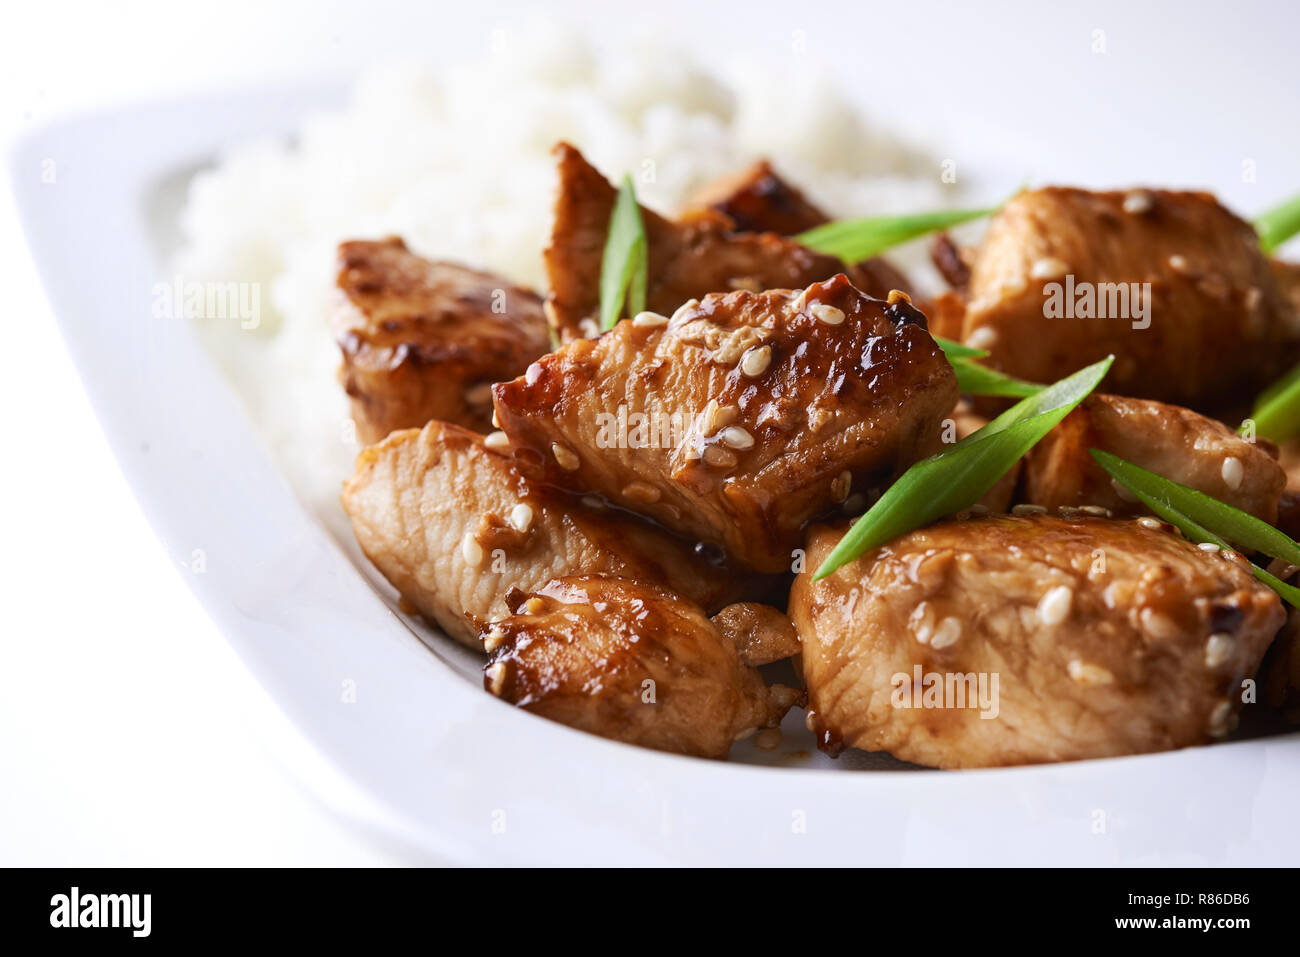 Plate Of Teriyaki Chicken And Rice Isolated On White